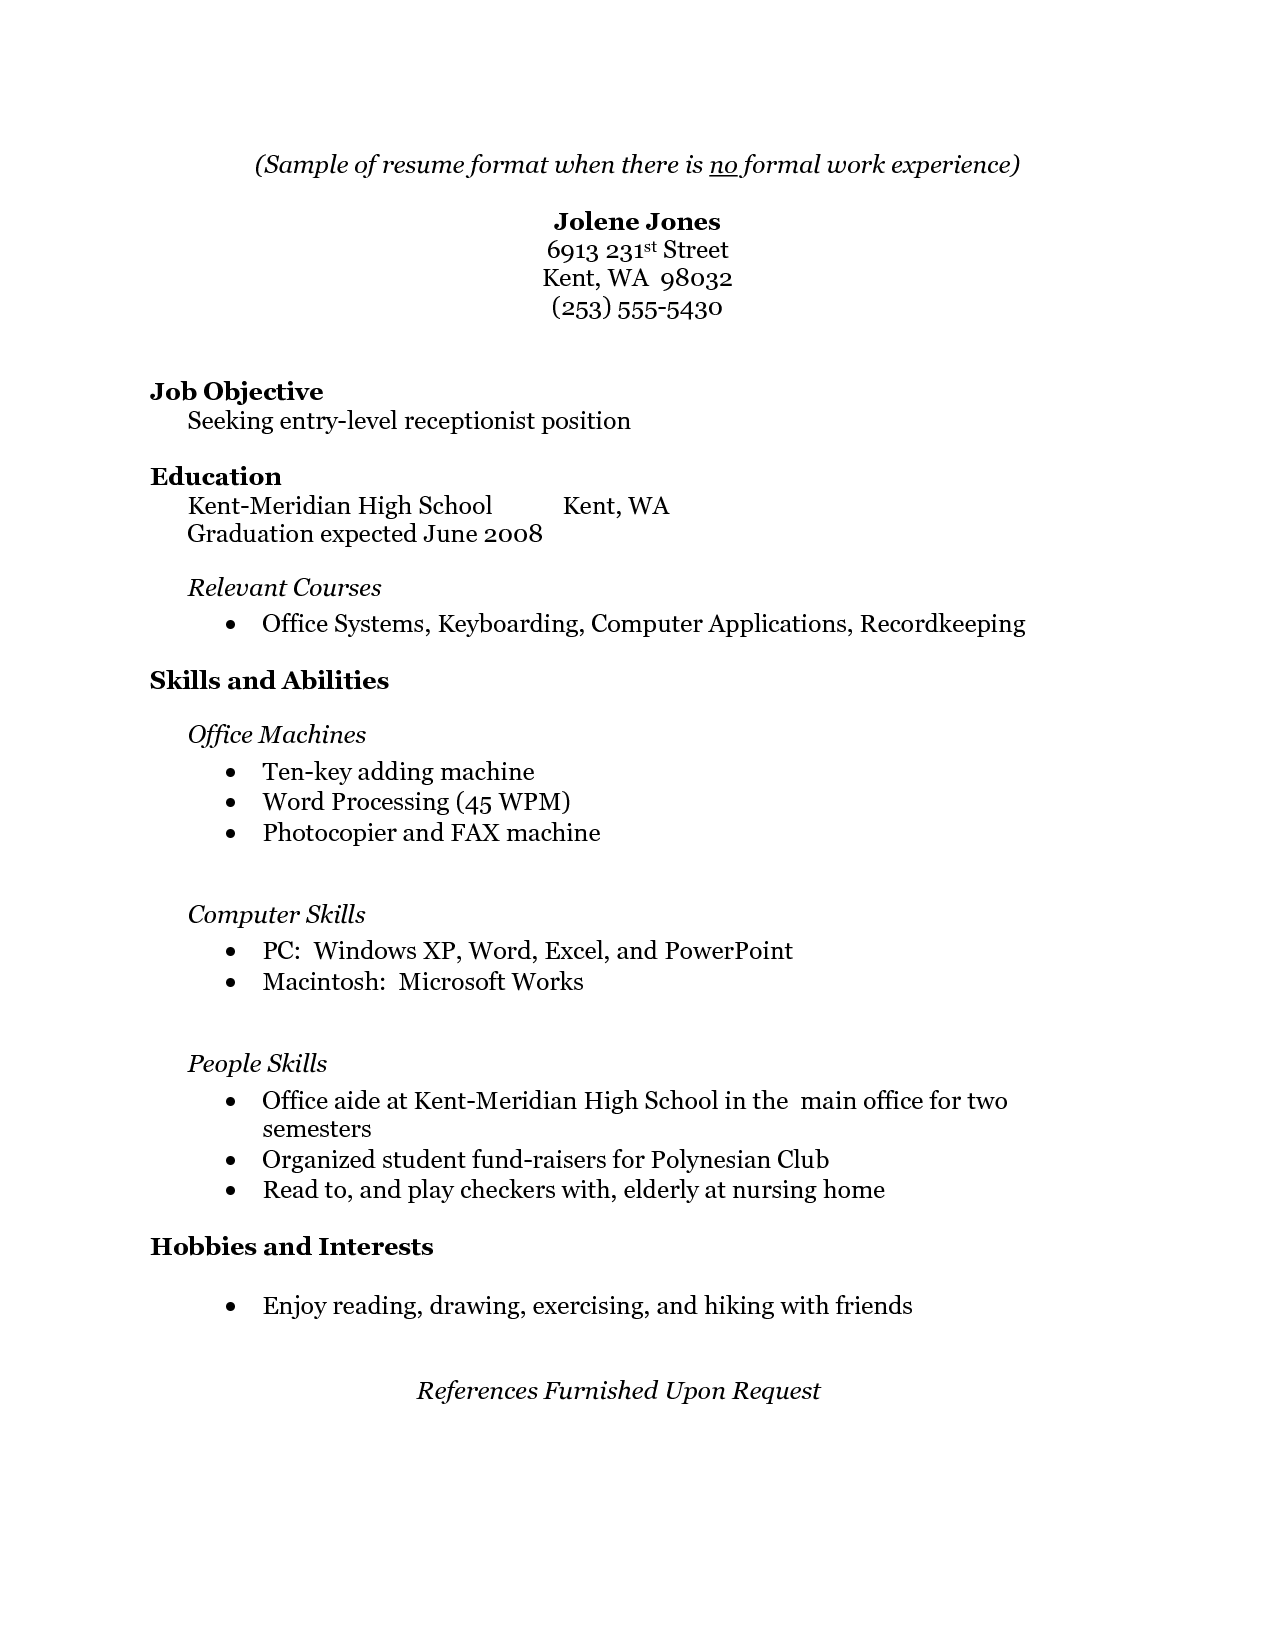 Sample Resume No Experience Gorgeous Job Resume No Experience Examples  Httpwww.resumecareerjob .